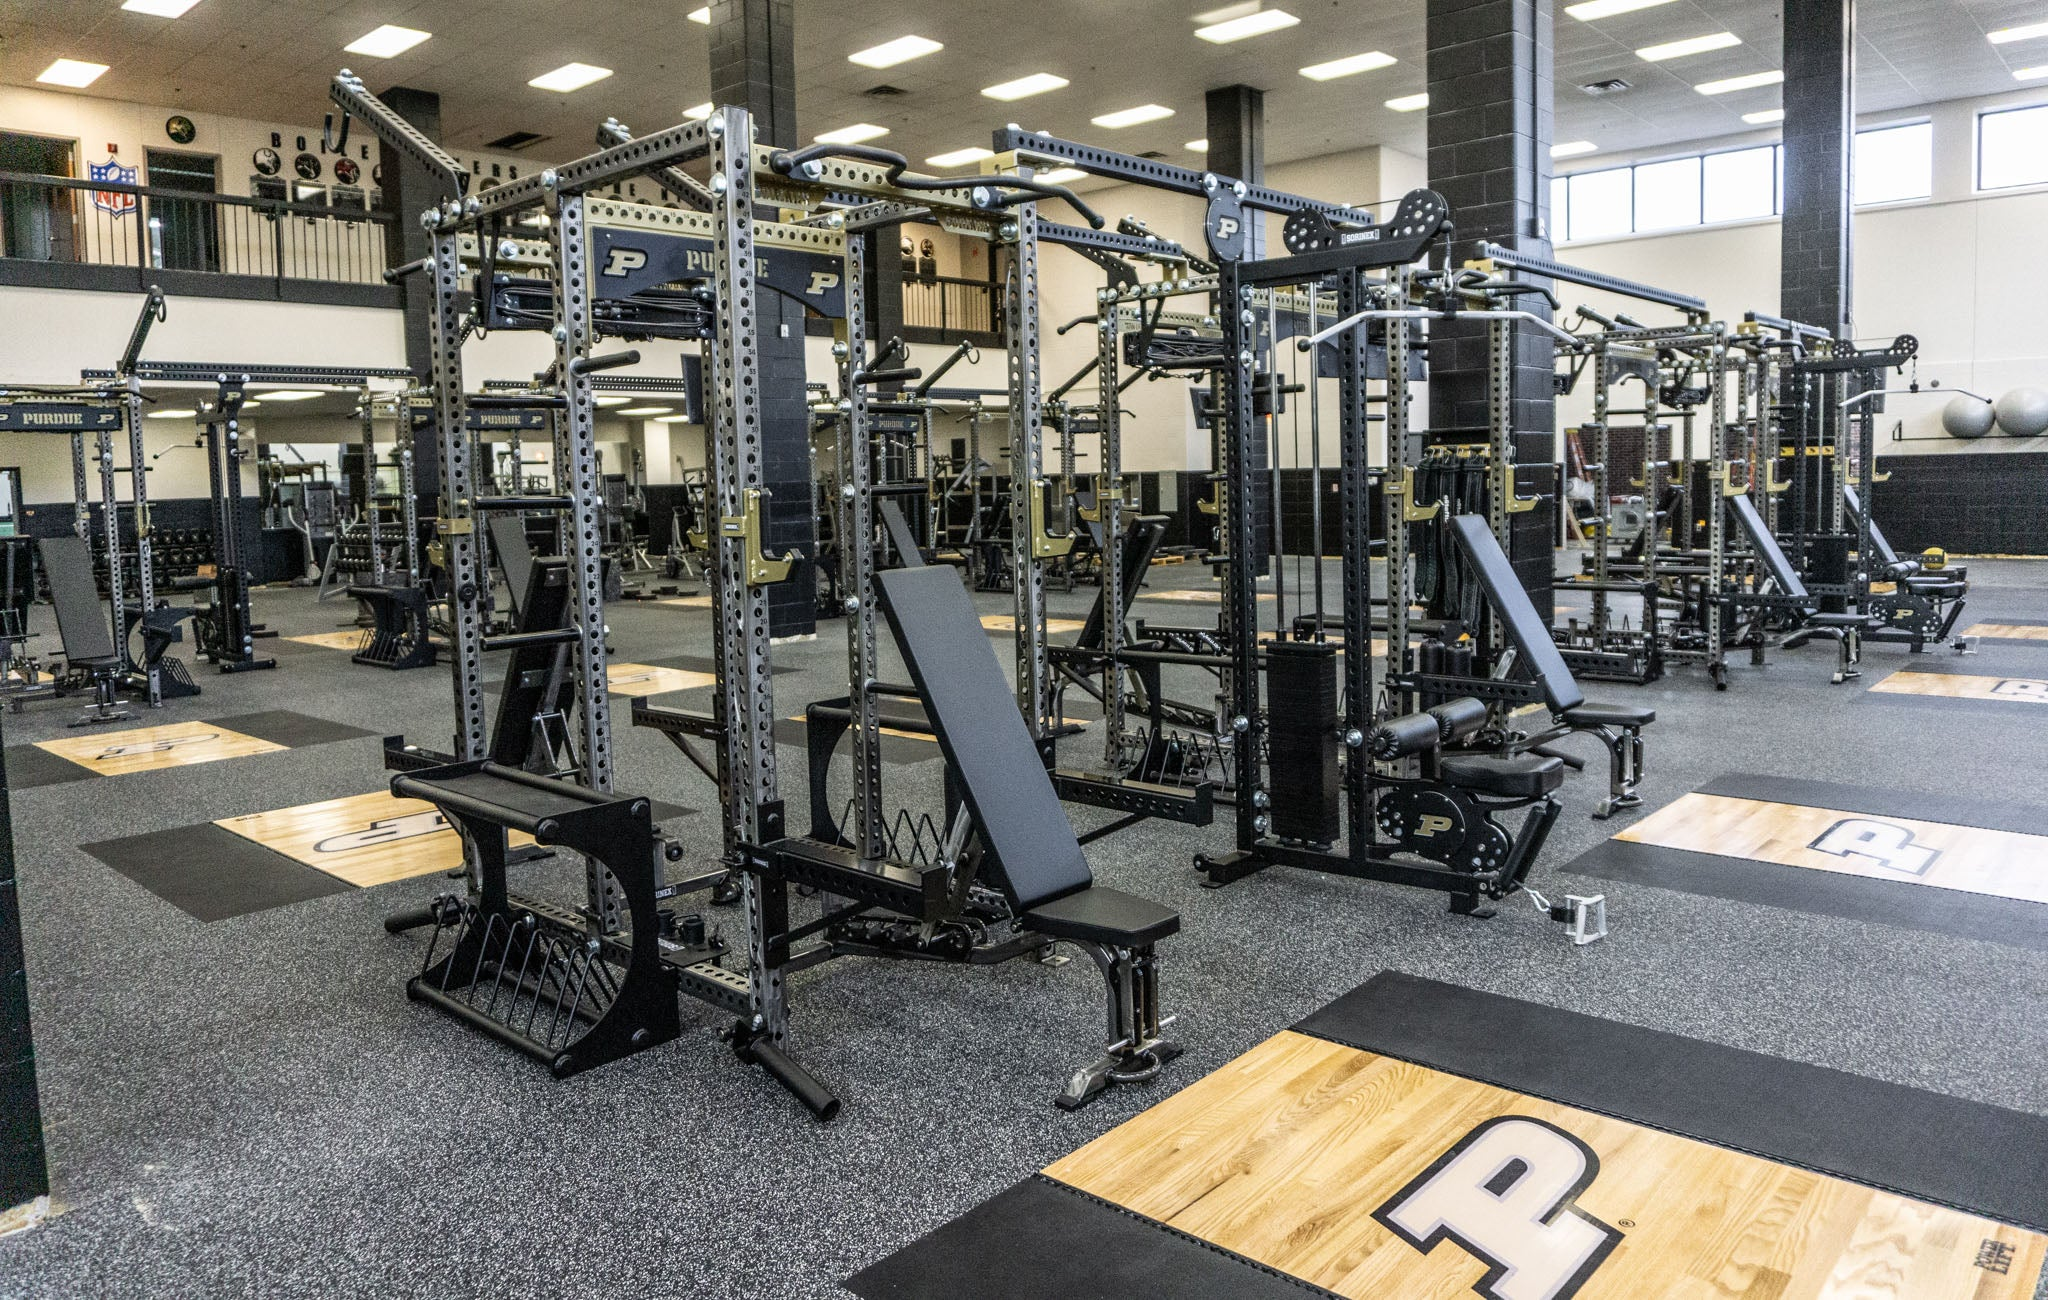 Purdue University Olympic strength training facility